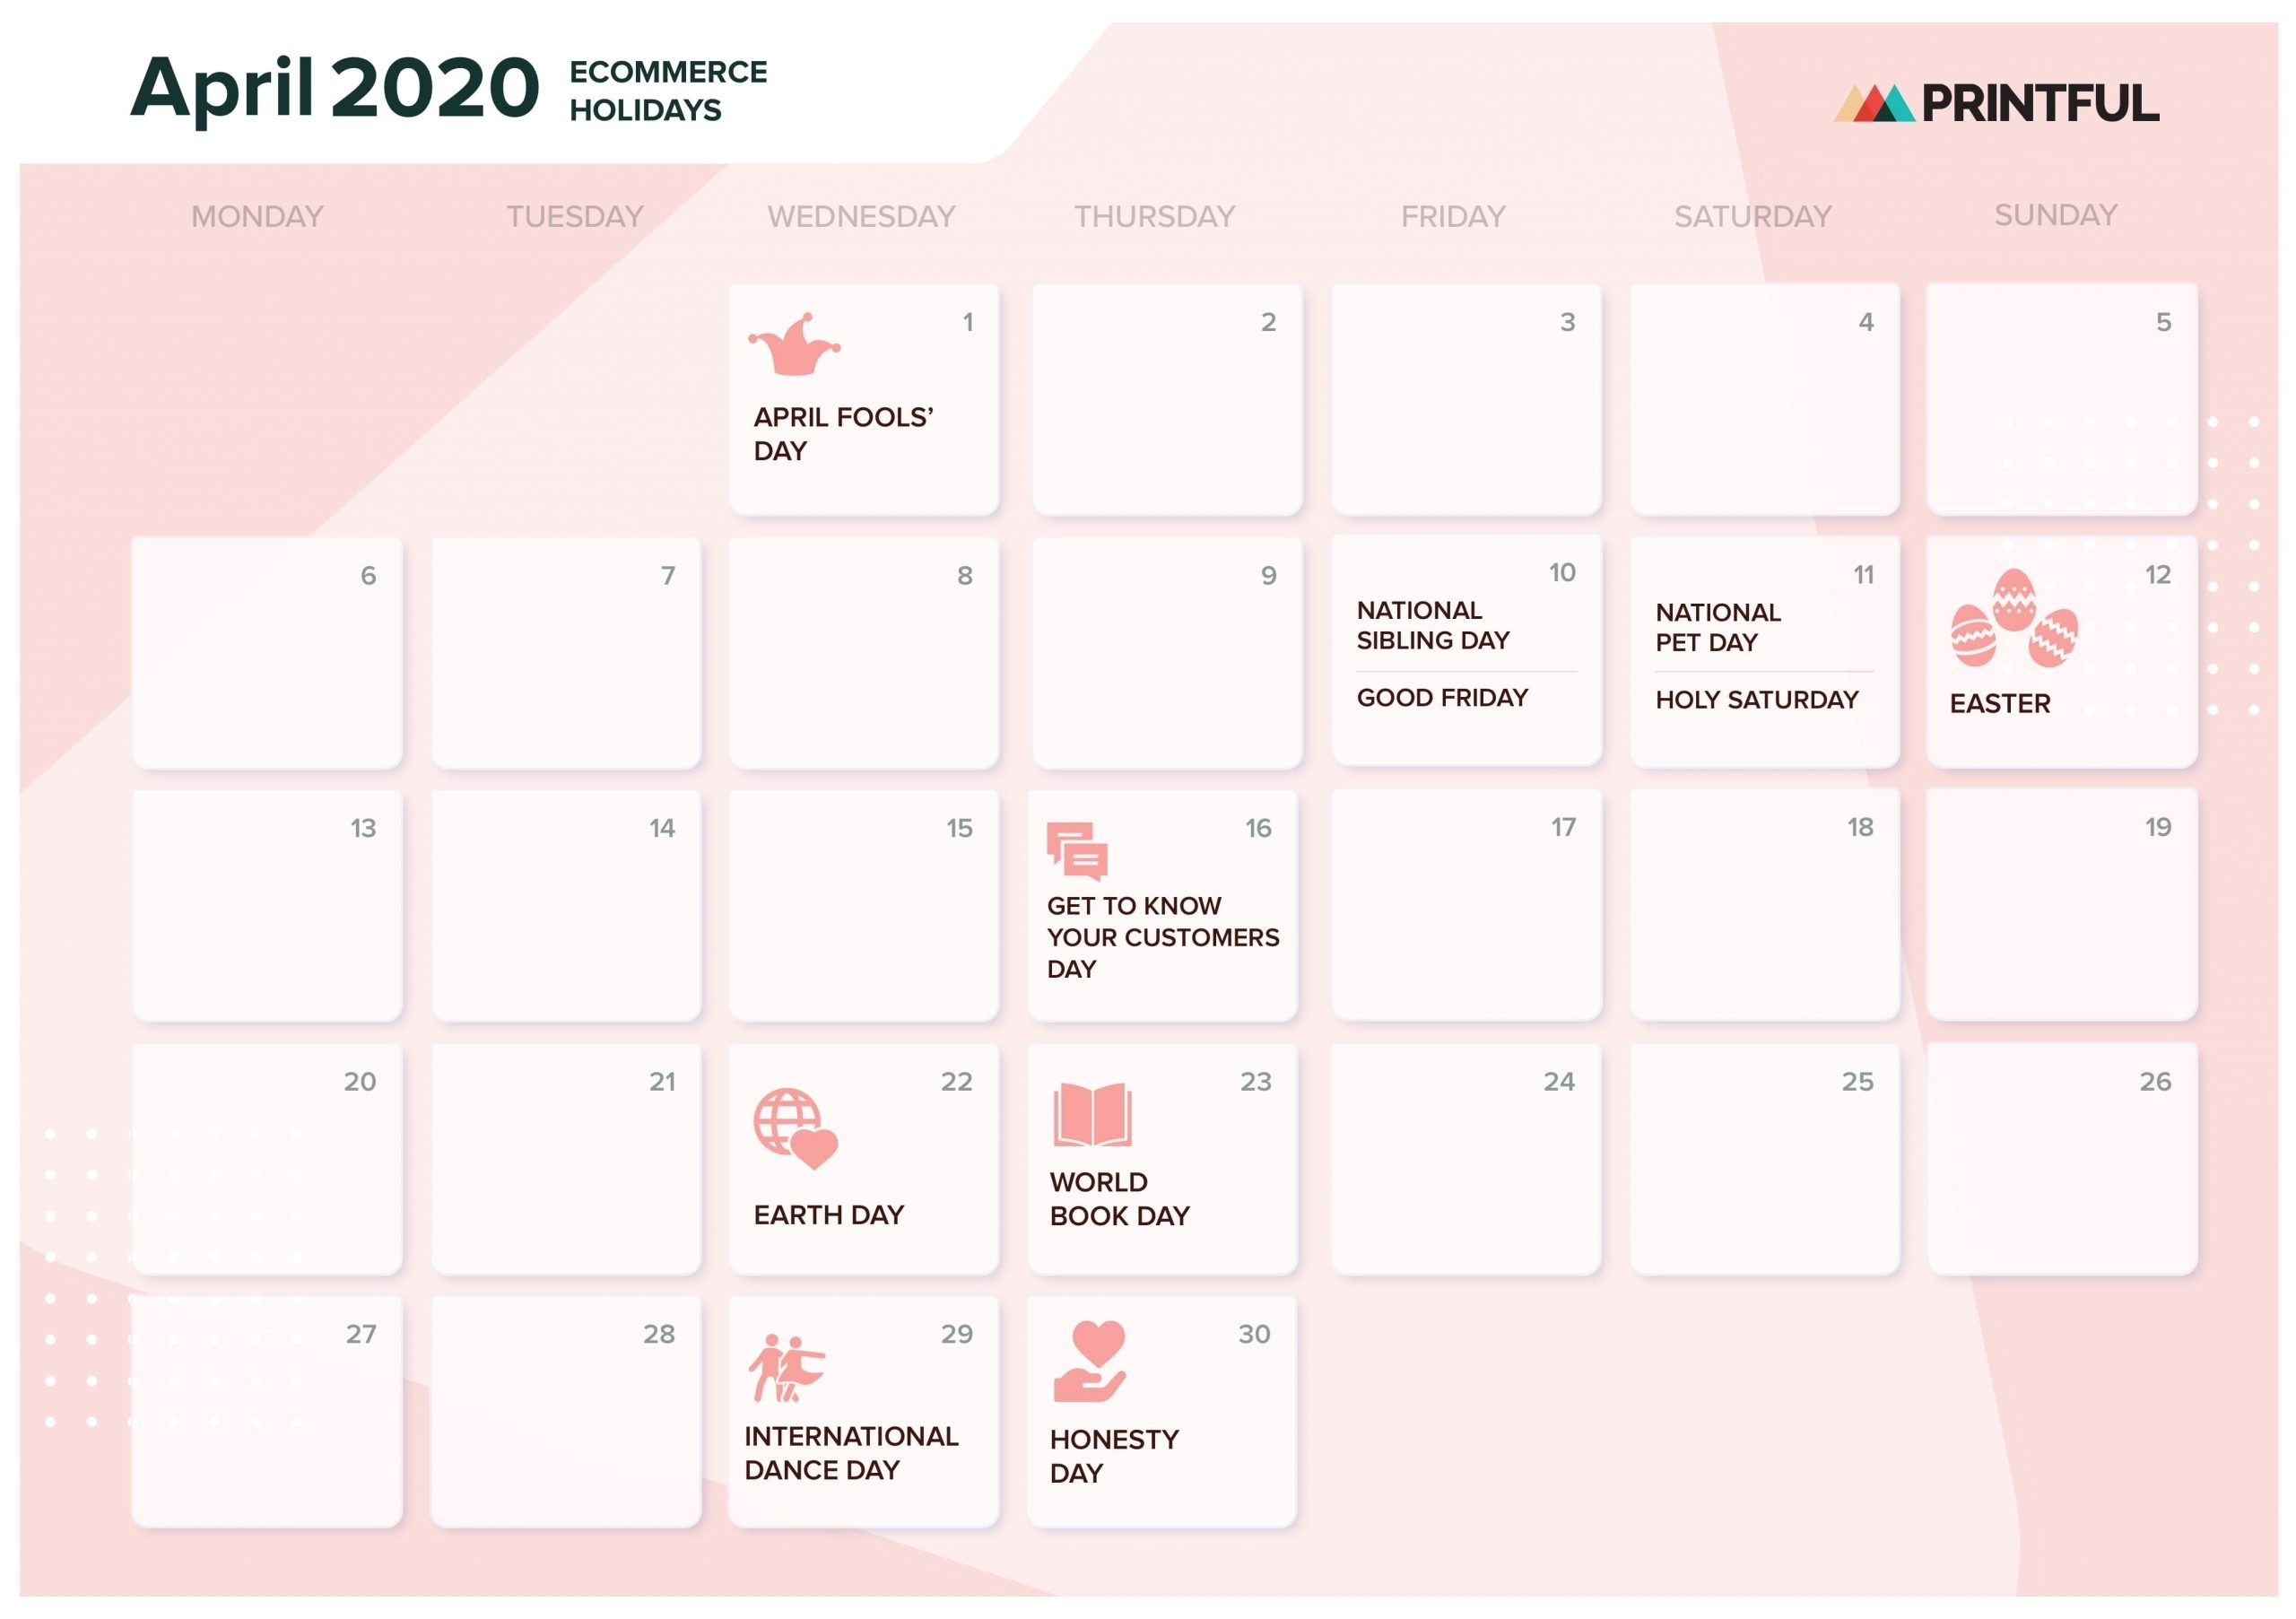 The Ultimate 2020 Ecommerce Holiday Marketing Calendar for 2020 Calendar With Important Dates